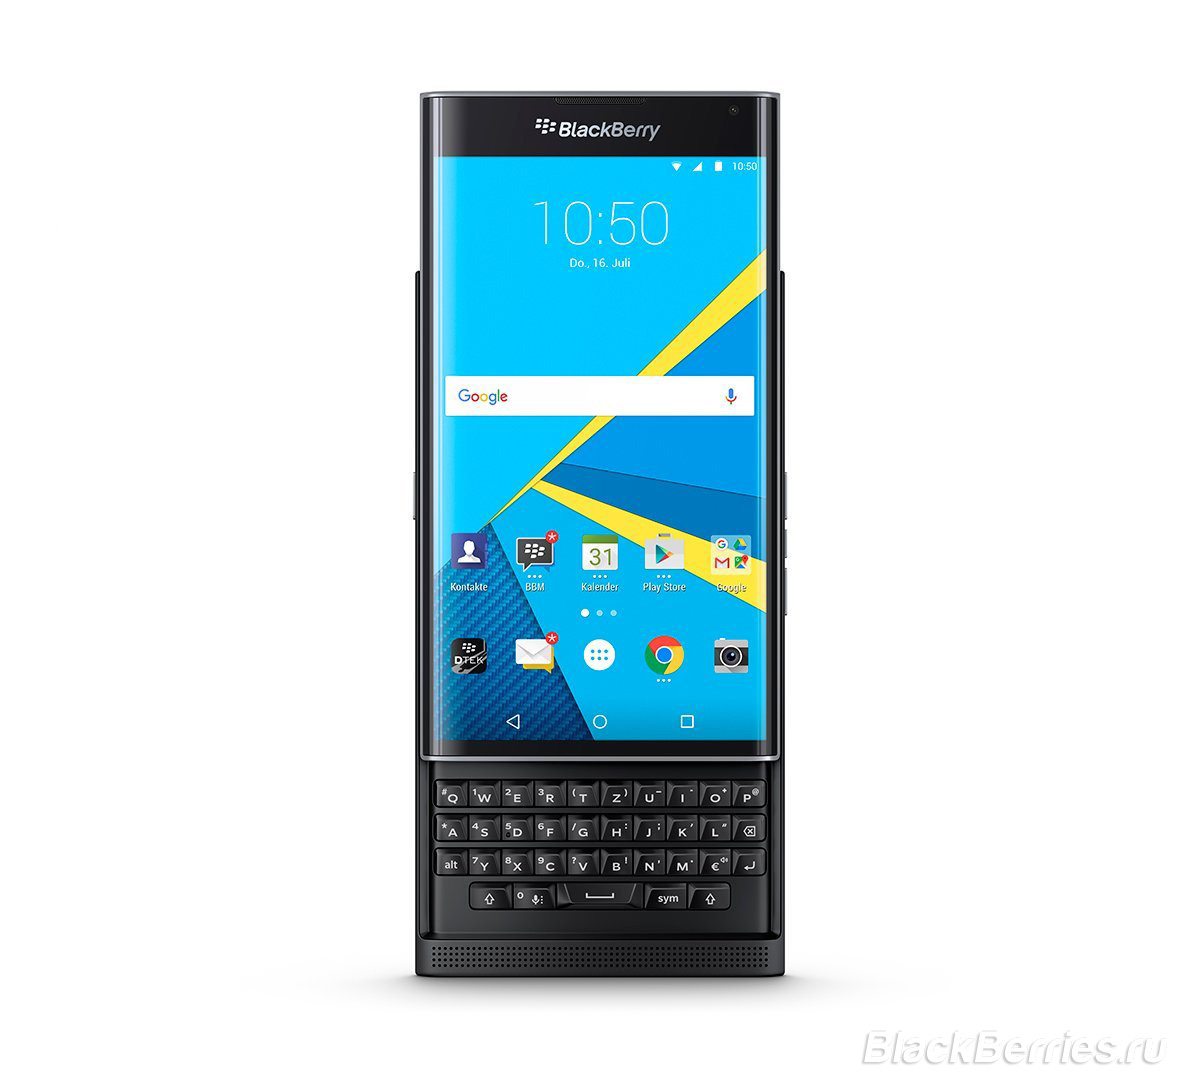 BlackBerry-Priv-Shop-1 copy